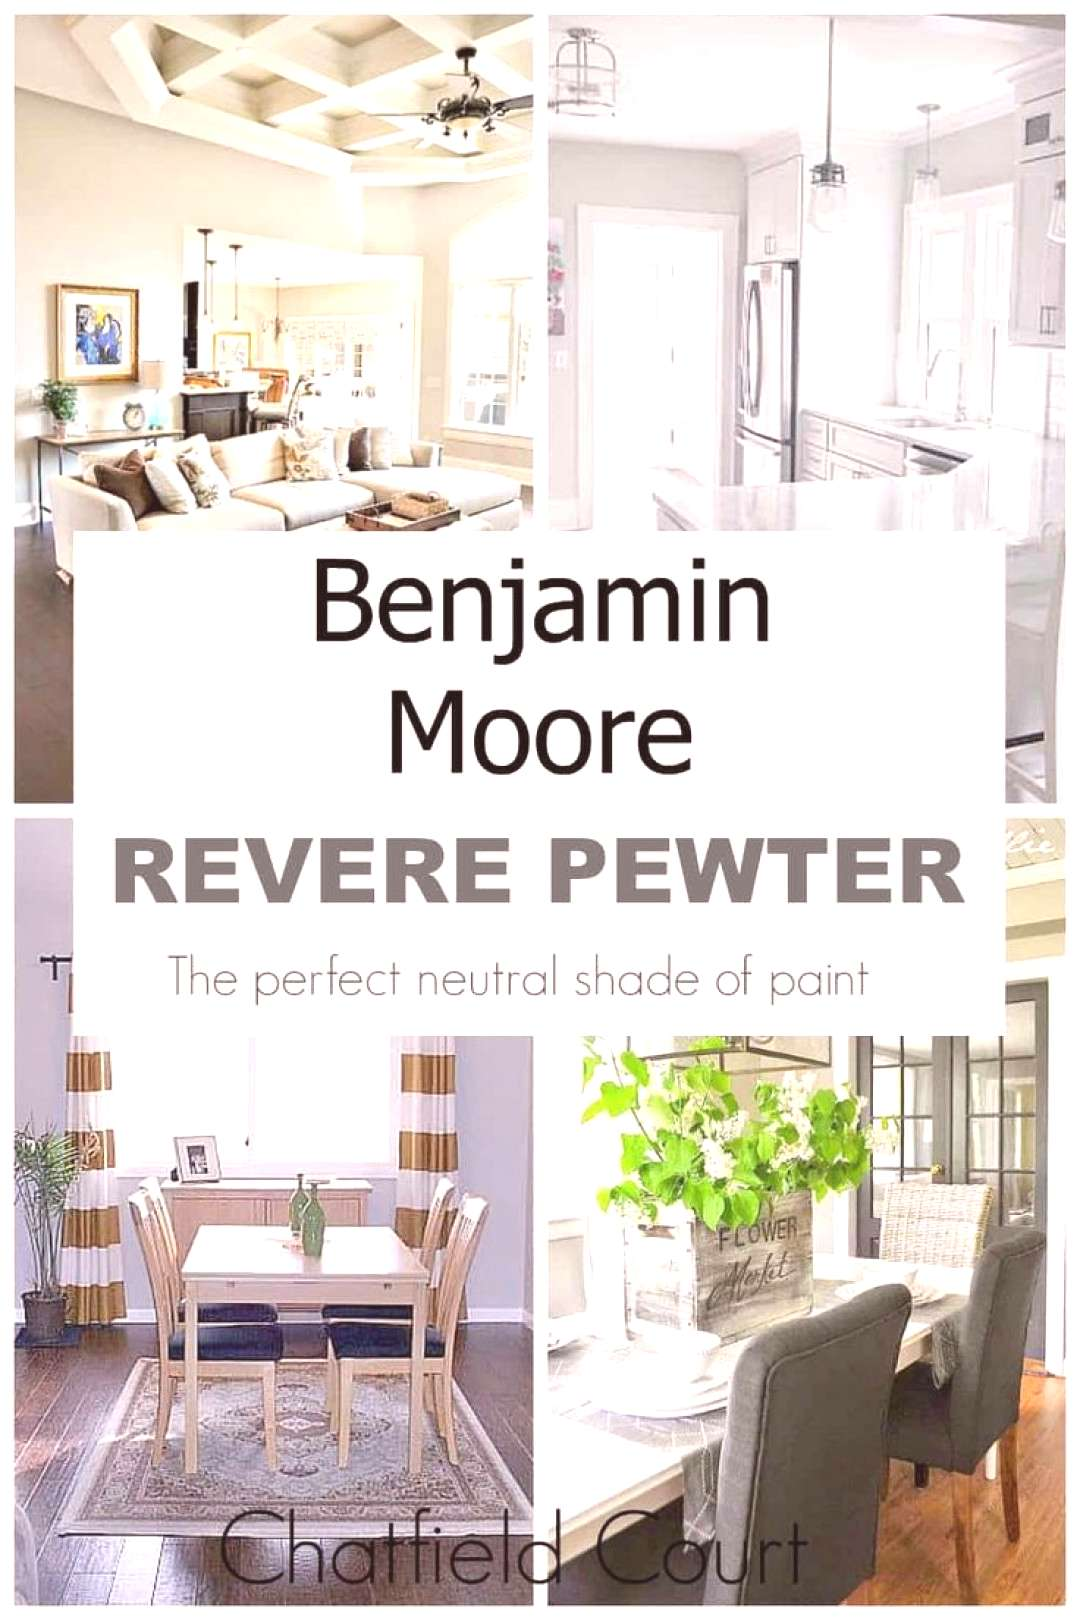 15 beautiful rooms painted with Benjamin Moore Revere Pewter. It's the perfect neutral shade of gra